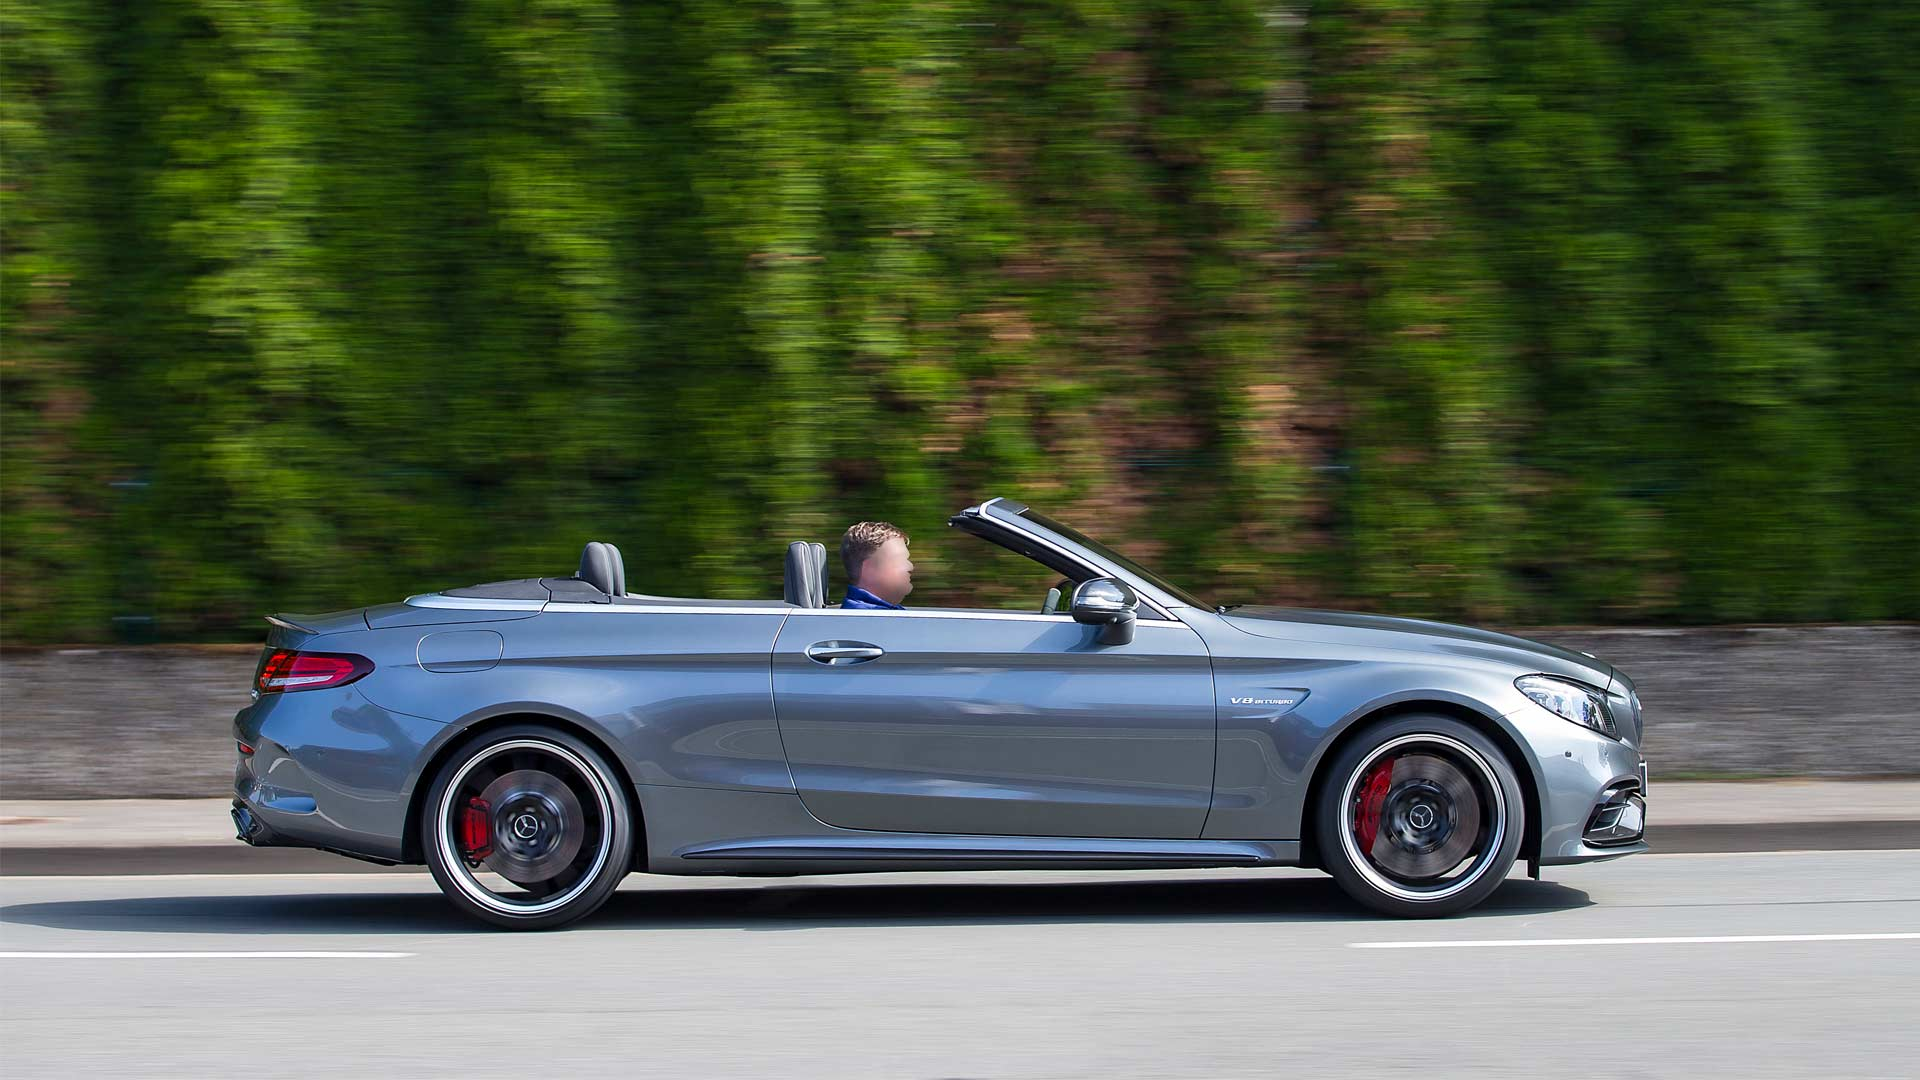 2019-Mercedes-AMG-C-63-S-Cabriolet_3